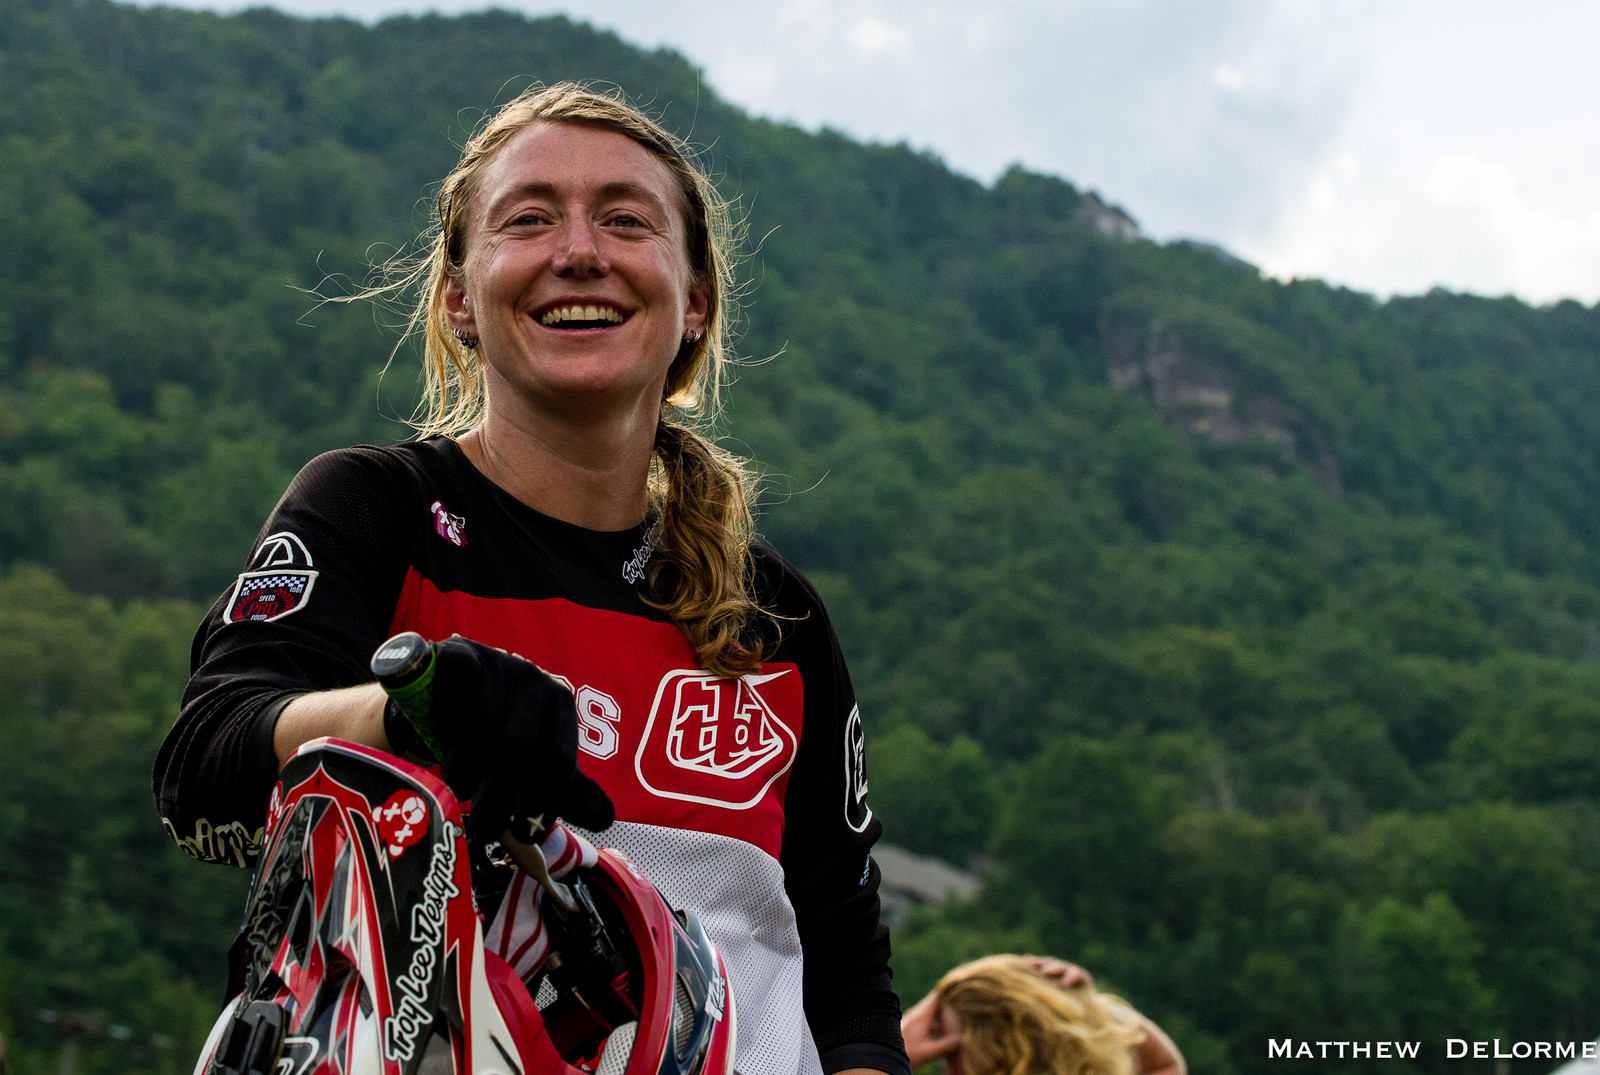 Jackie Harmony, Fastest Women's Qualifier at U.S. National Champs - U.S National Championship Dual Slalom Finals and DH Qualifying - Mountain Biking Pictures - Vital MTB